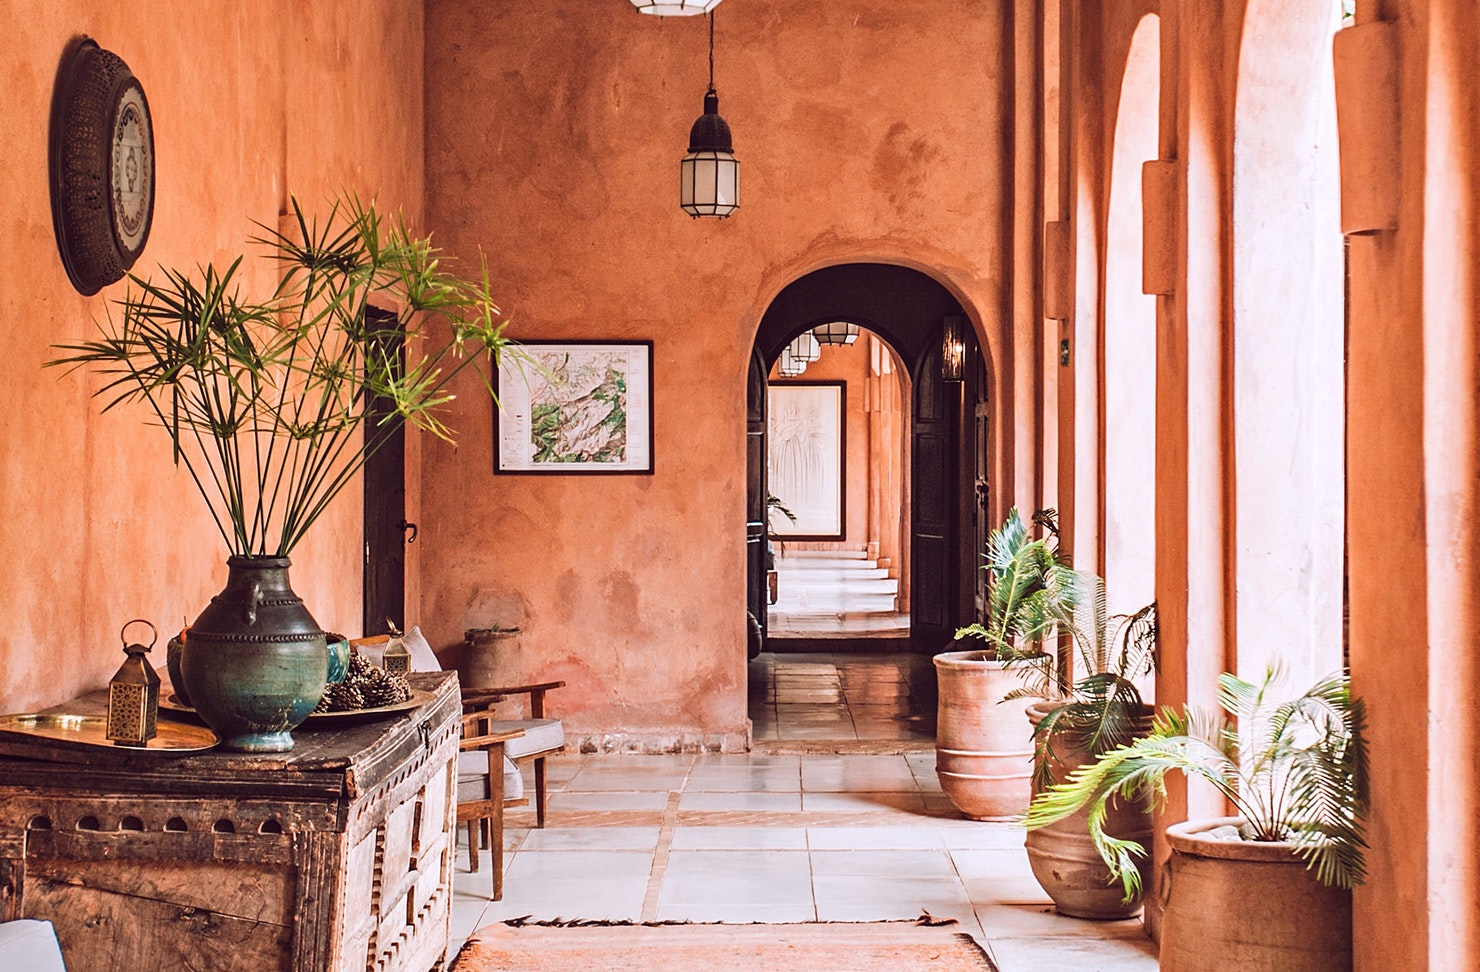 A terracotta-coloured interior of a beautiful building in Morocco.